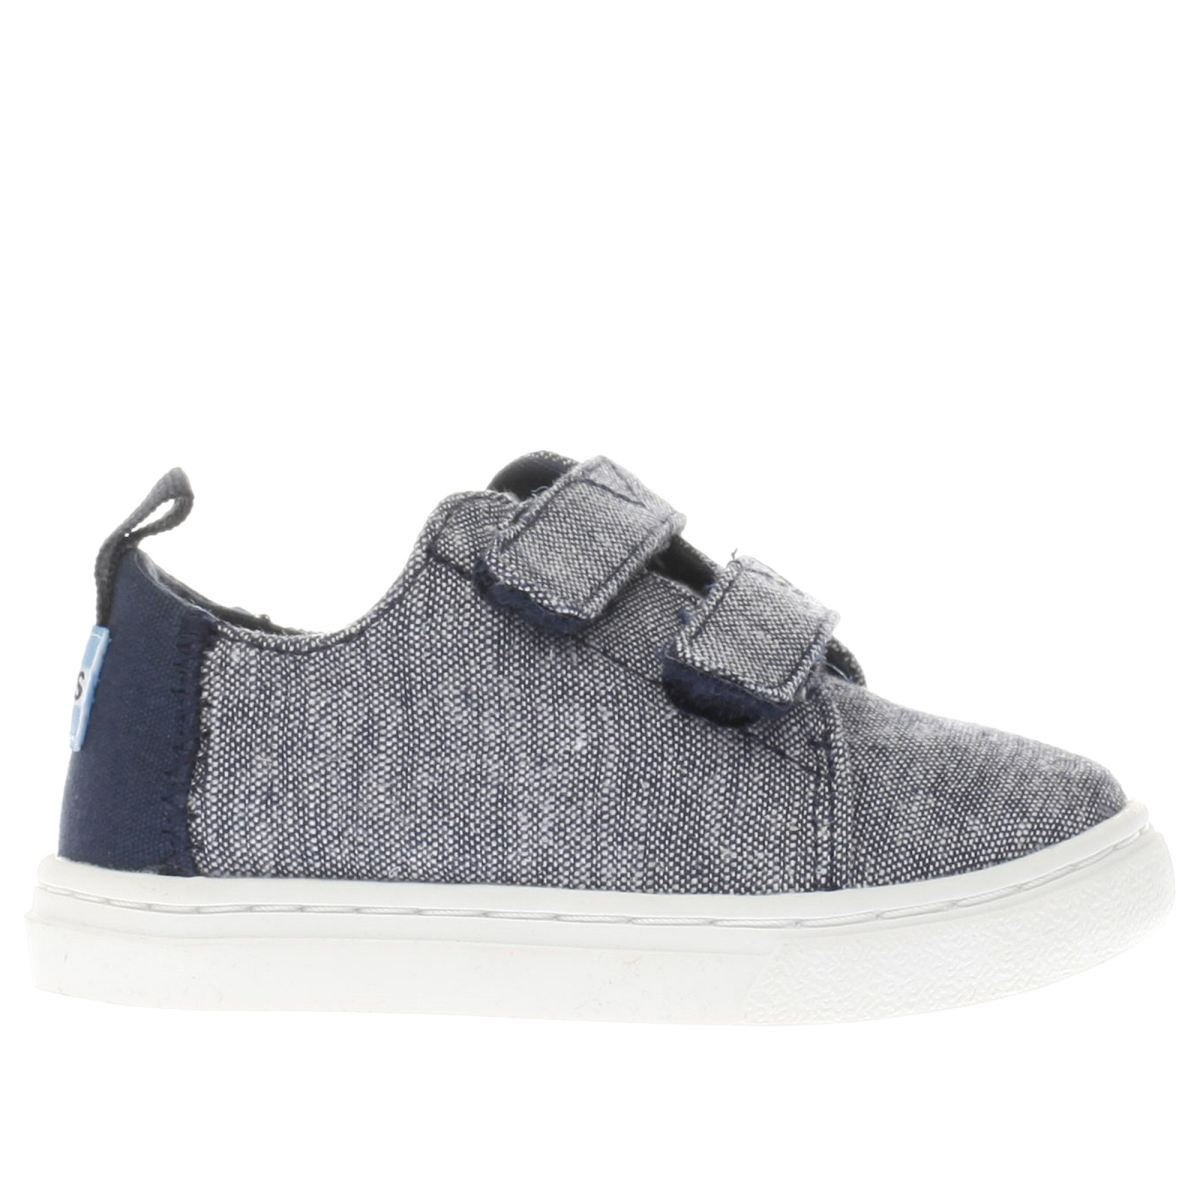 toms navy lenny sneaker Boys Toddler Shoes